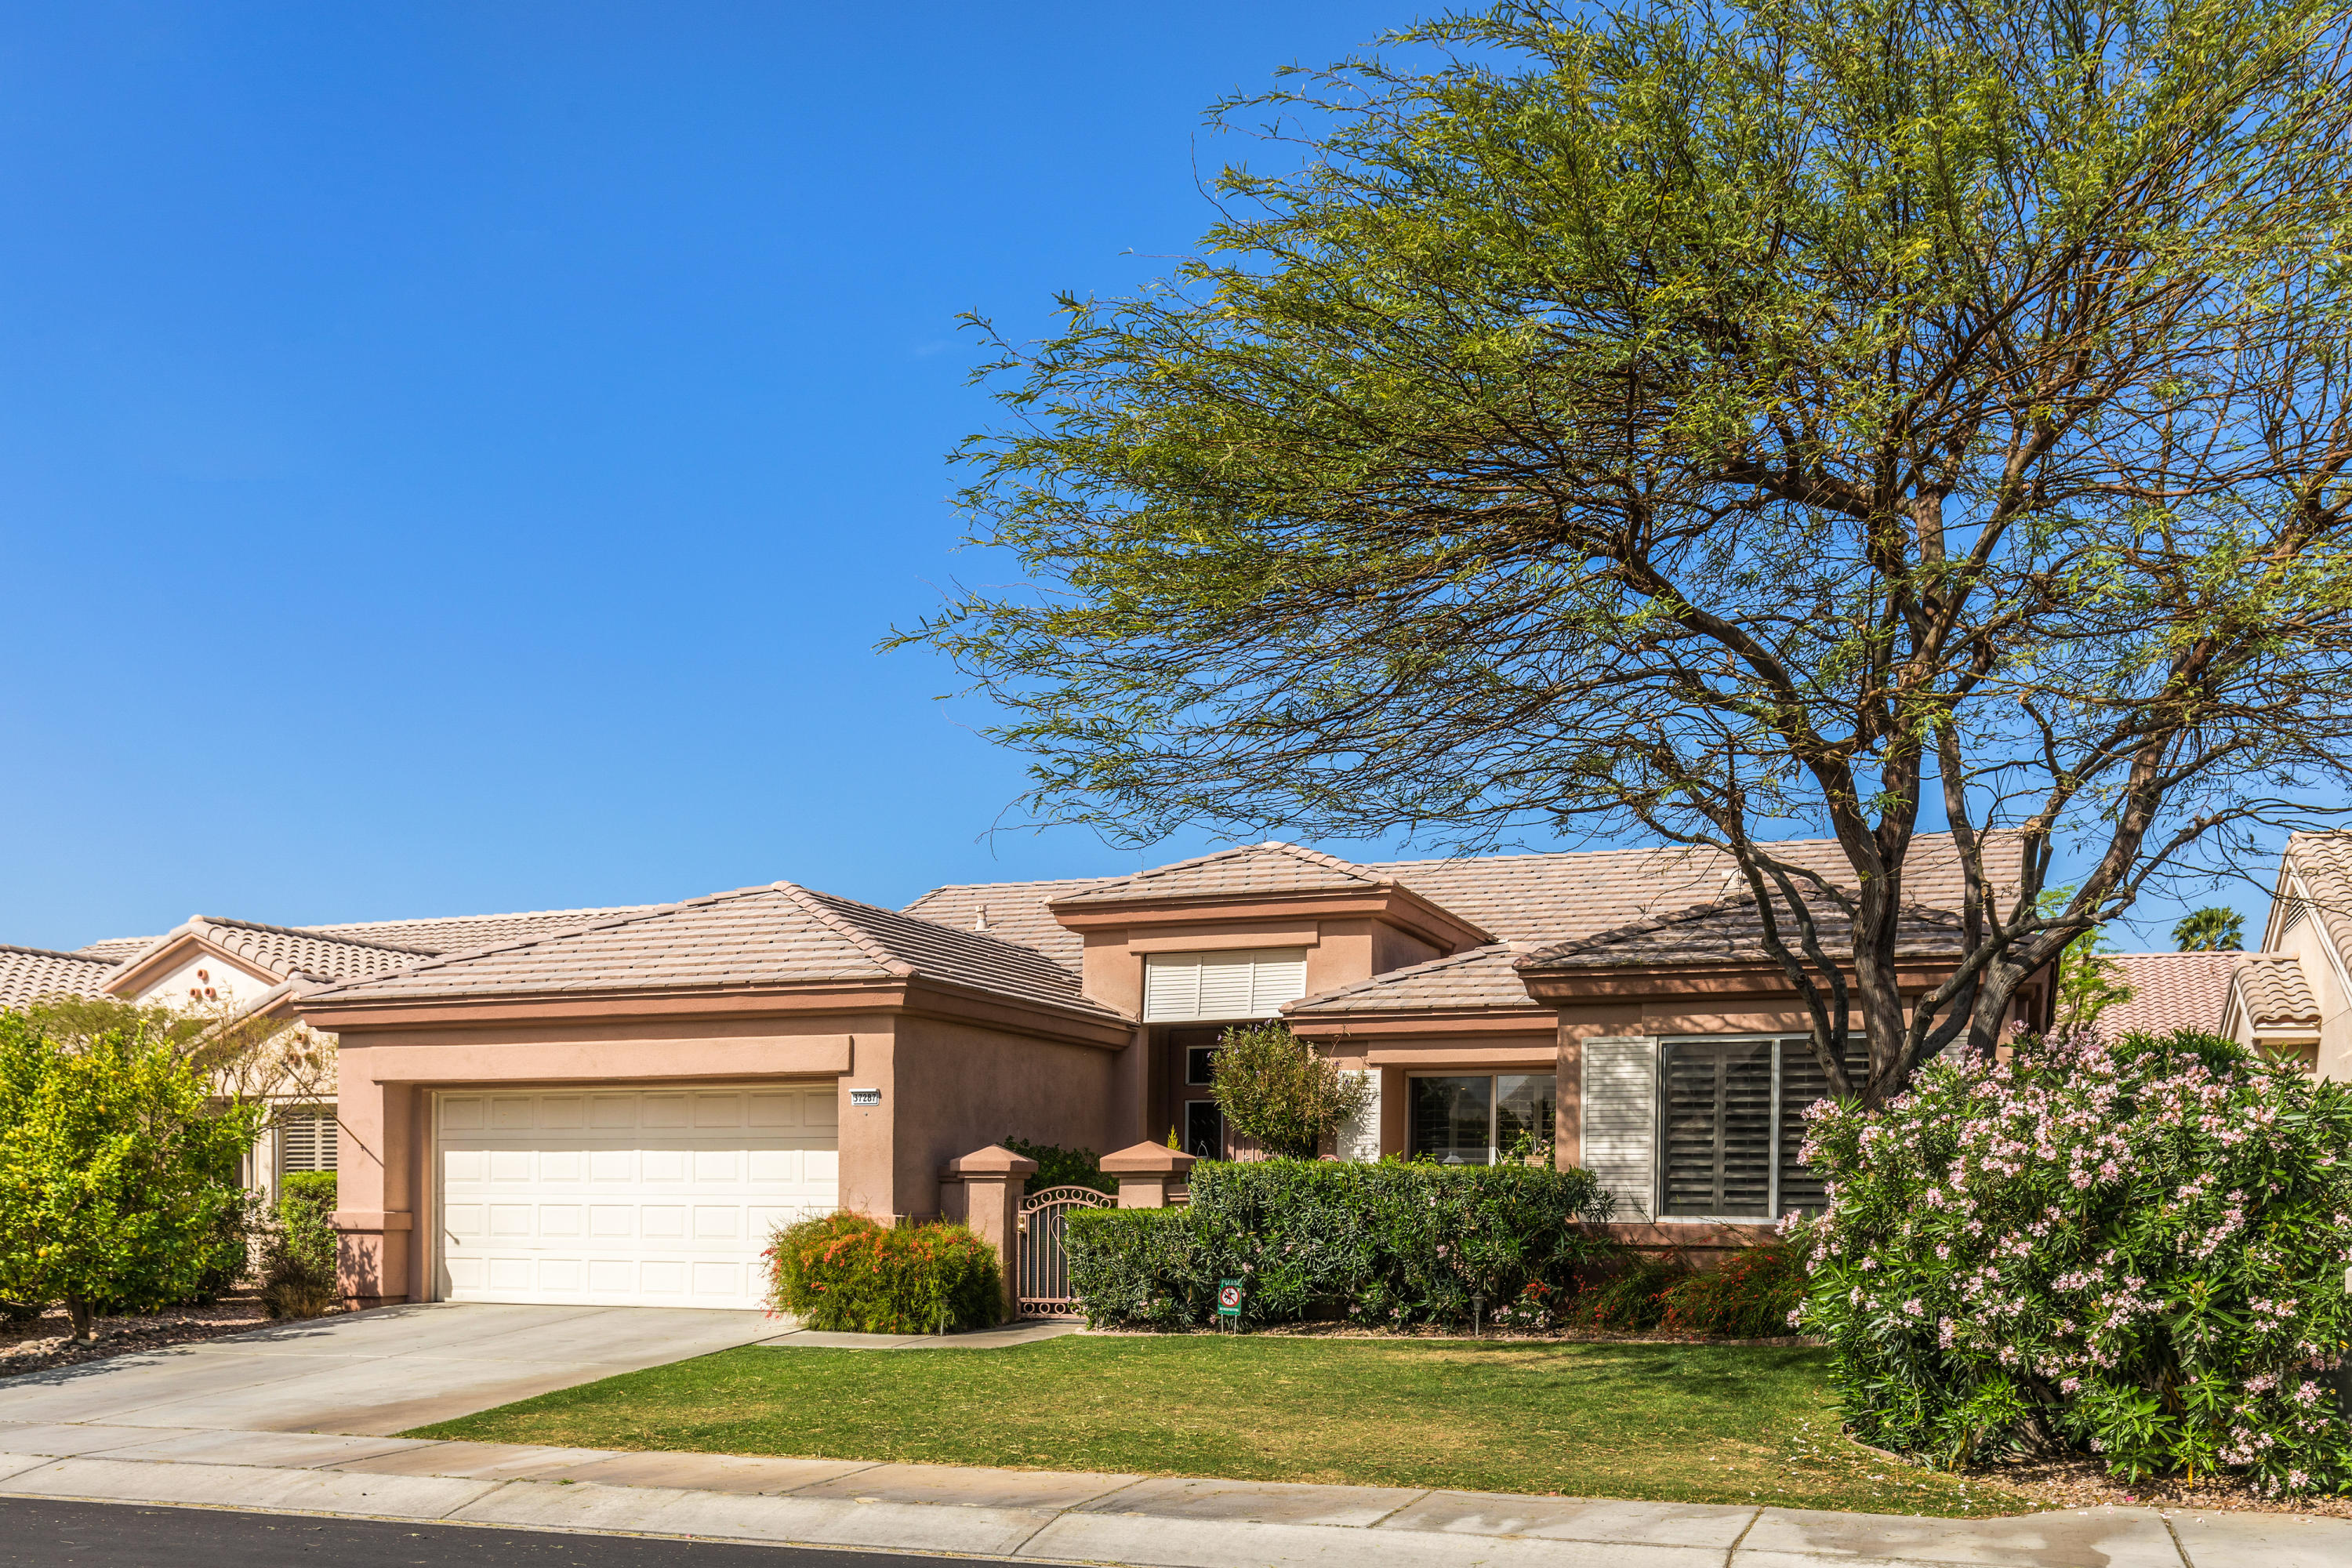 Photo of 37287 Skycrest Road, Palm Desert, CA 92211